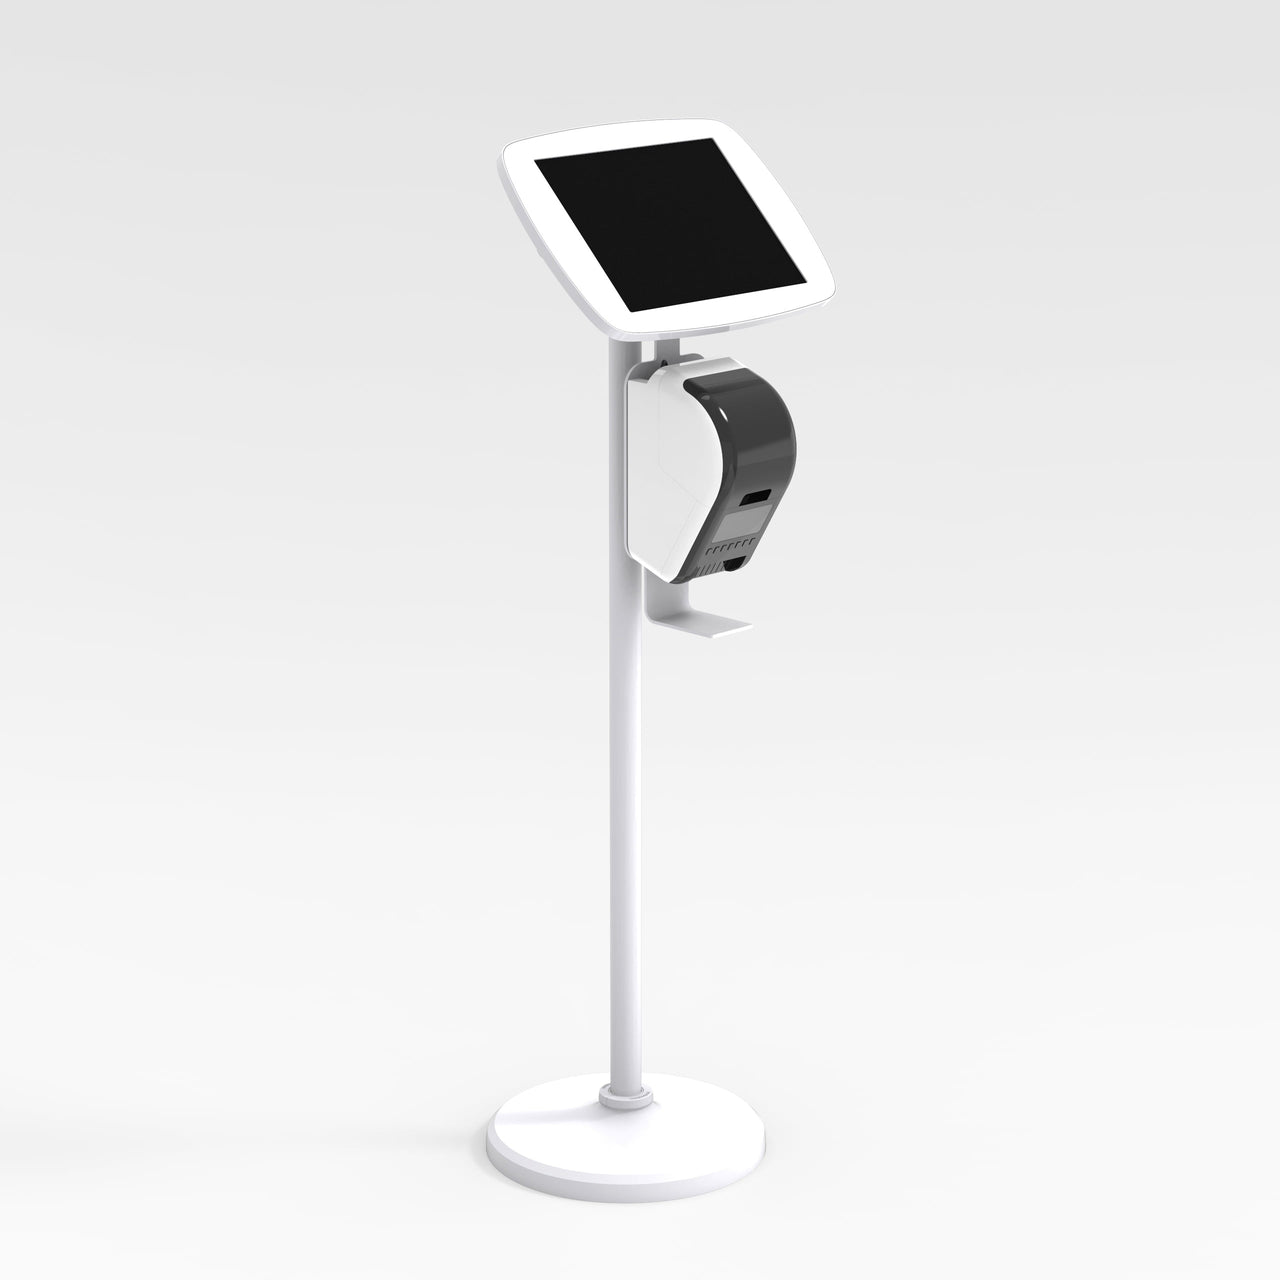 Bouncepad Floorstanding Brother - A secure tablet & iPad floor stand in white.